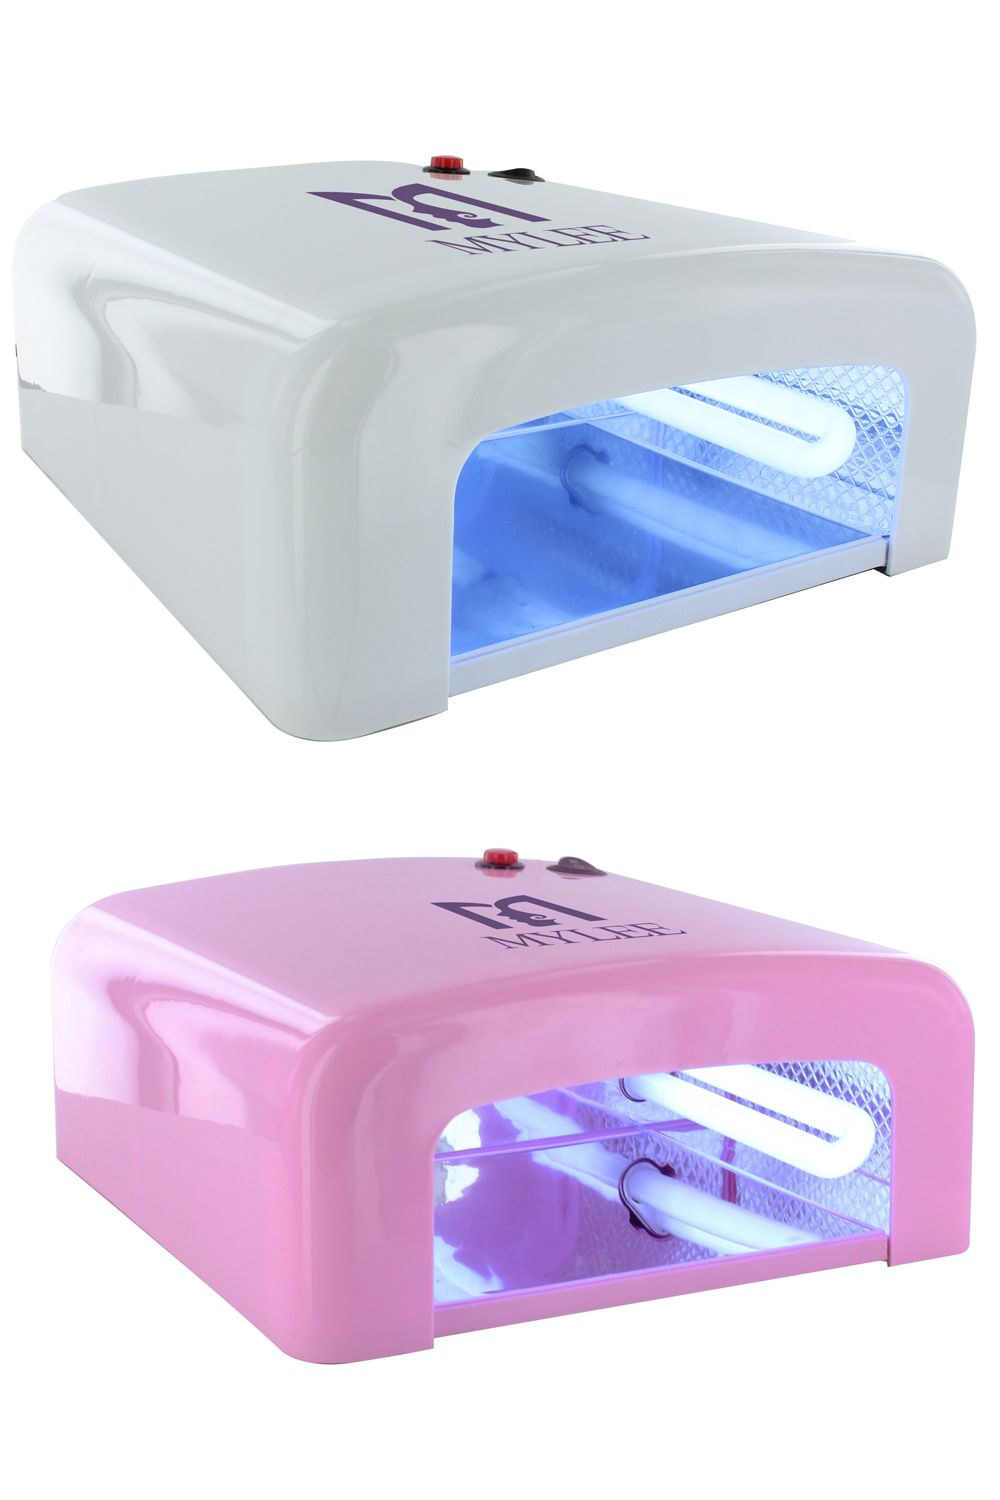 Mylee 36w Gel Polish Curing Uv Lamp Nail Art Shellac Dryer With Timer 4 Bulbs Uv Led Uv Lamp Nails